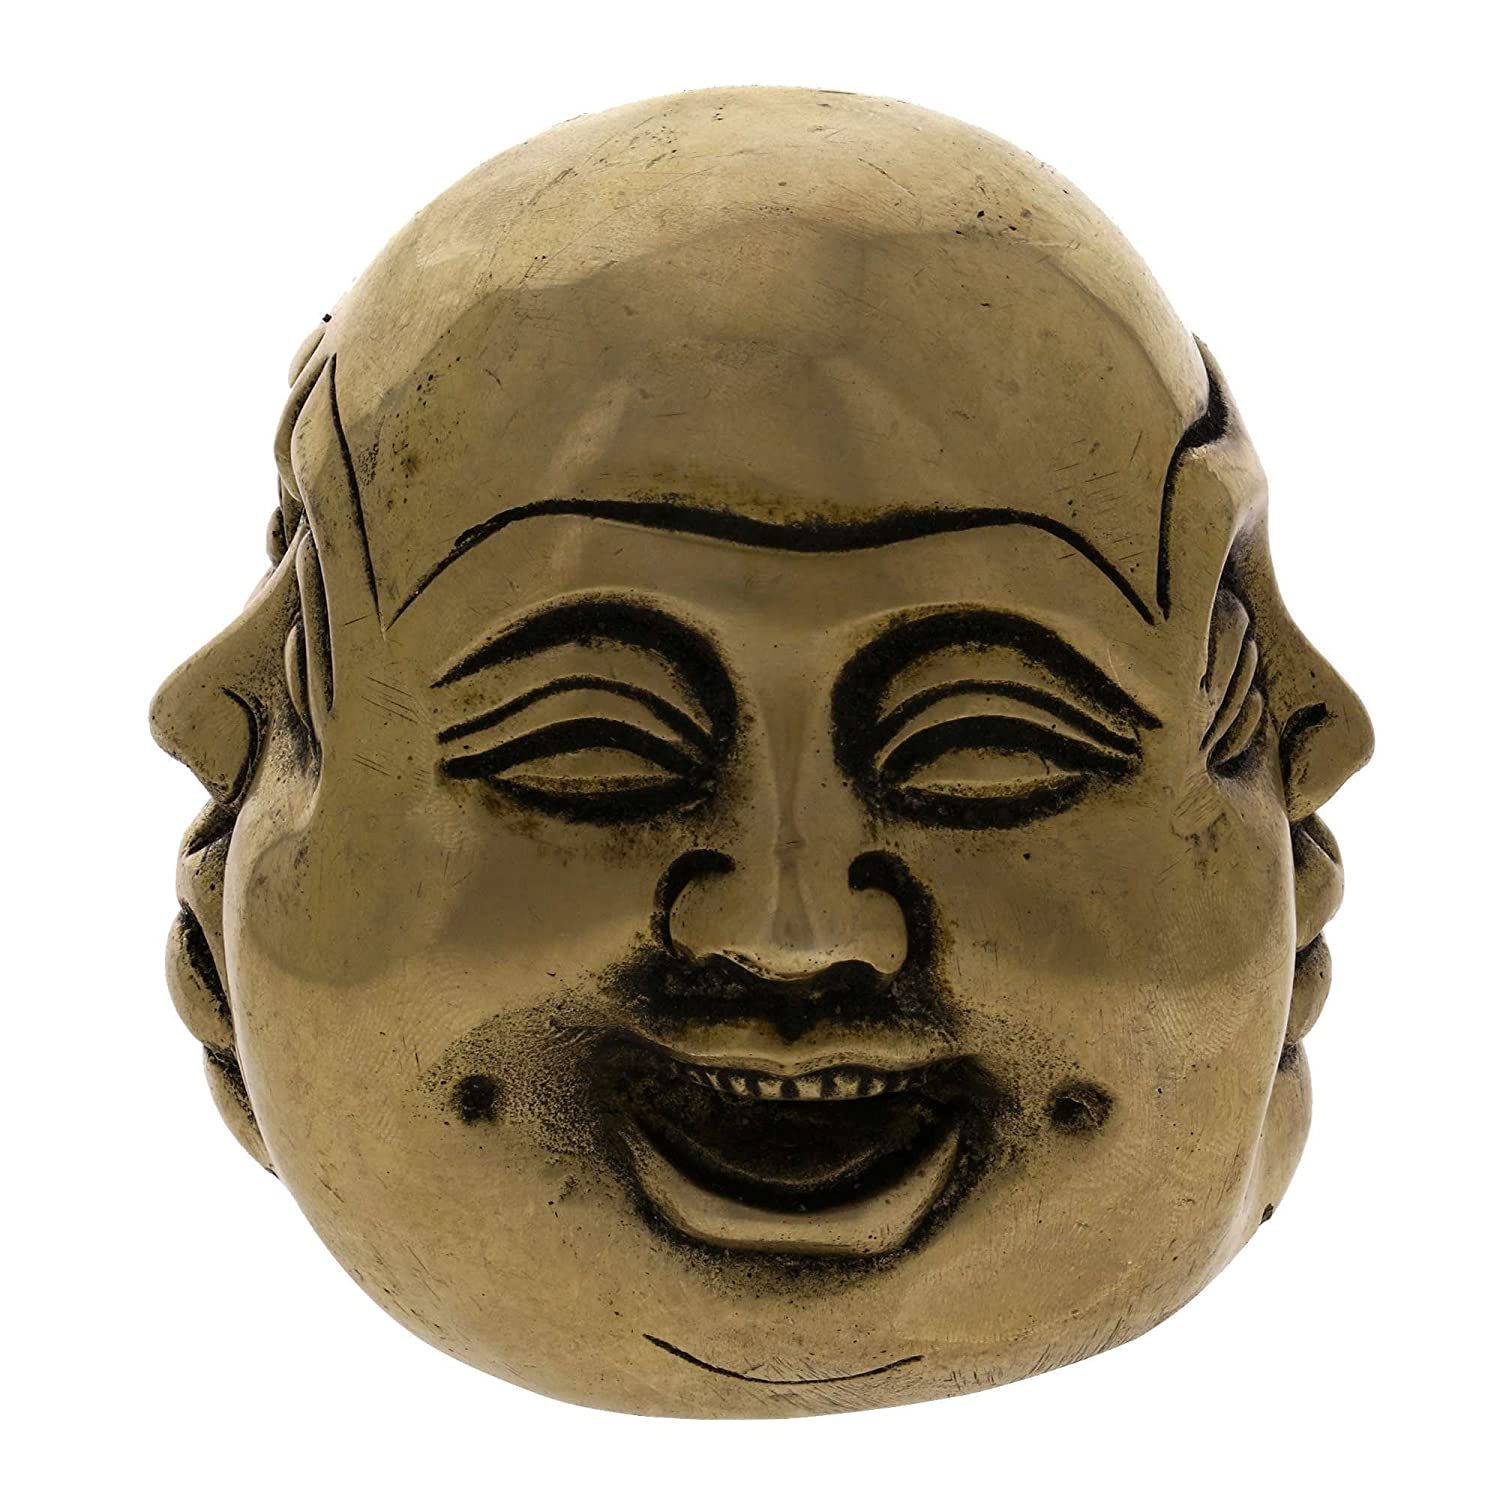 CDM product Laughing Buddha Brass Collectibles and Figurines big image